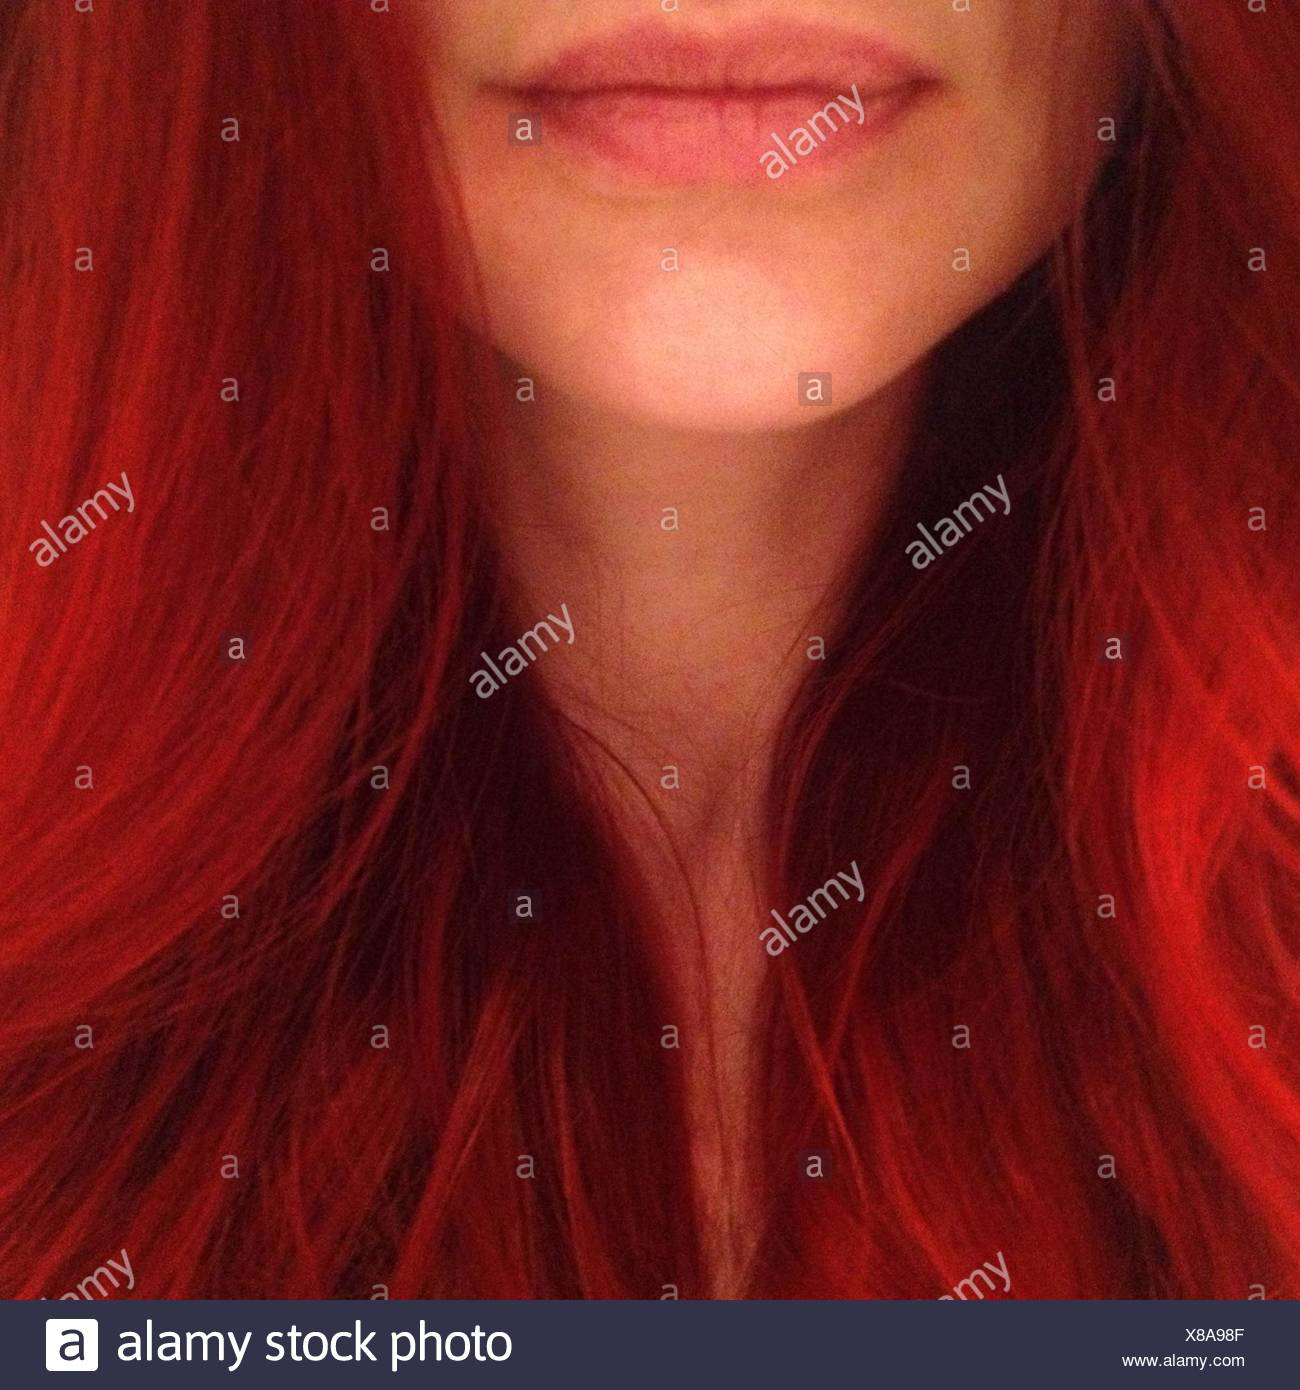 Close-Up Of Young Woman With Red Hair - Stock Image